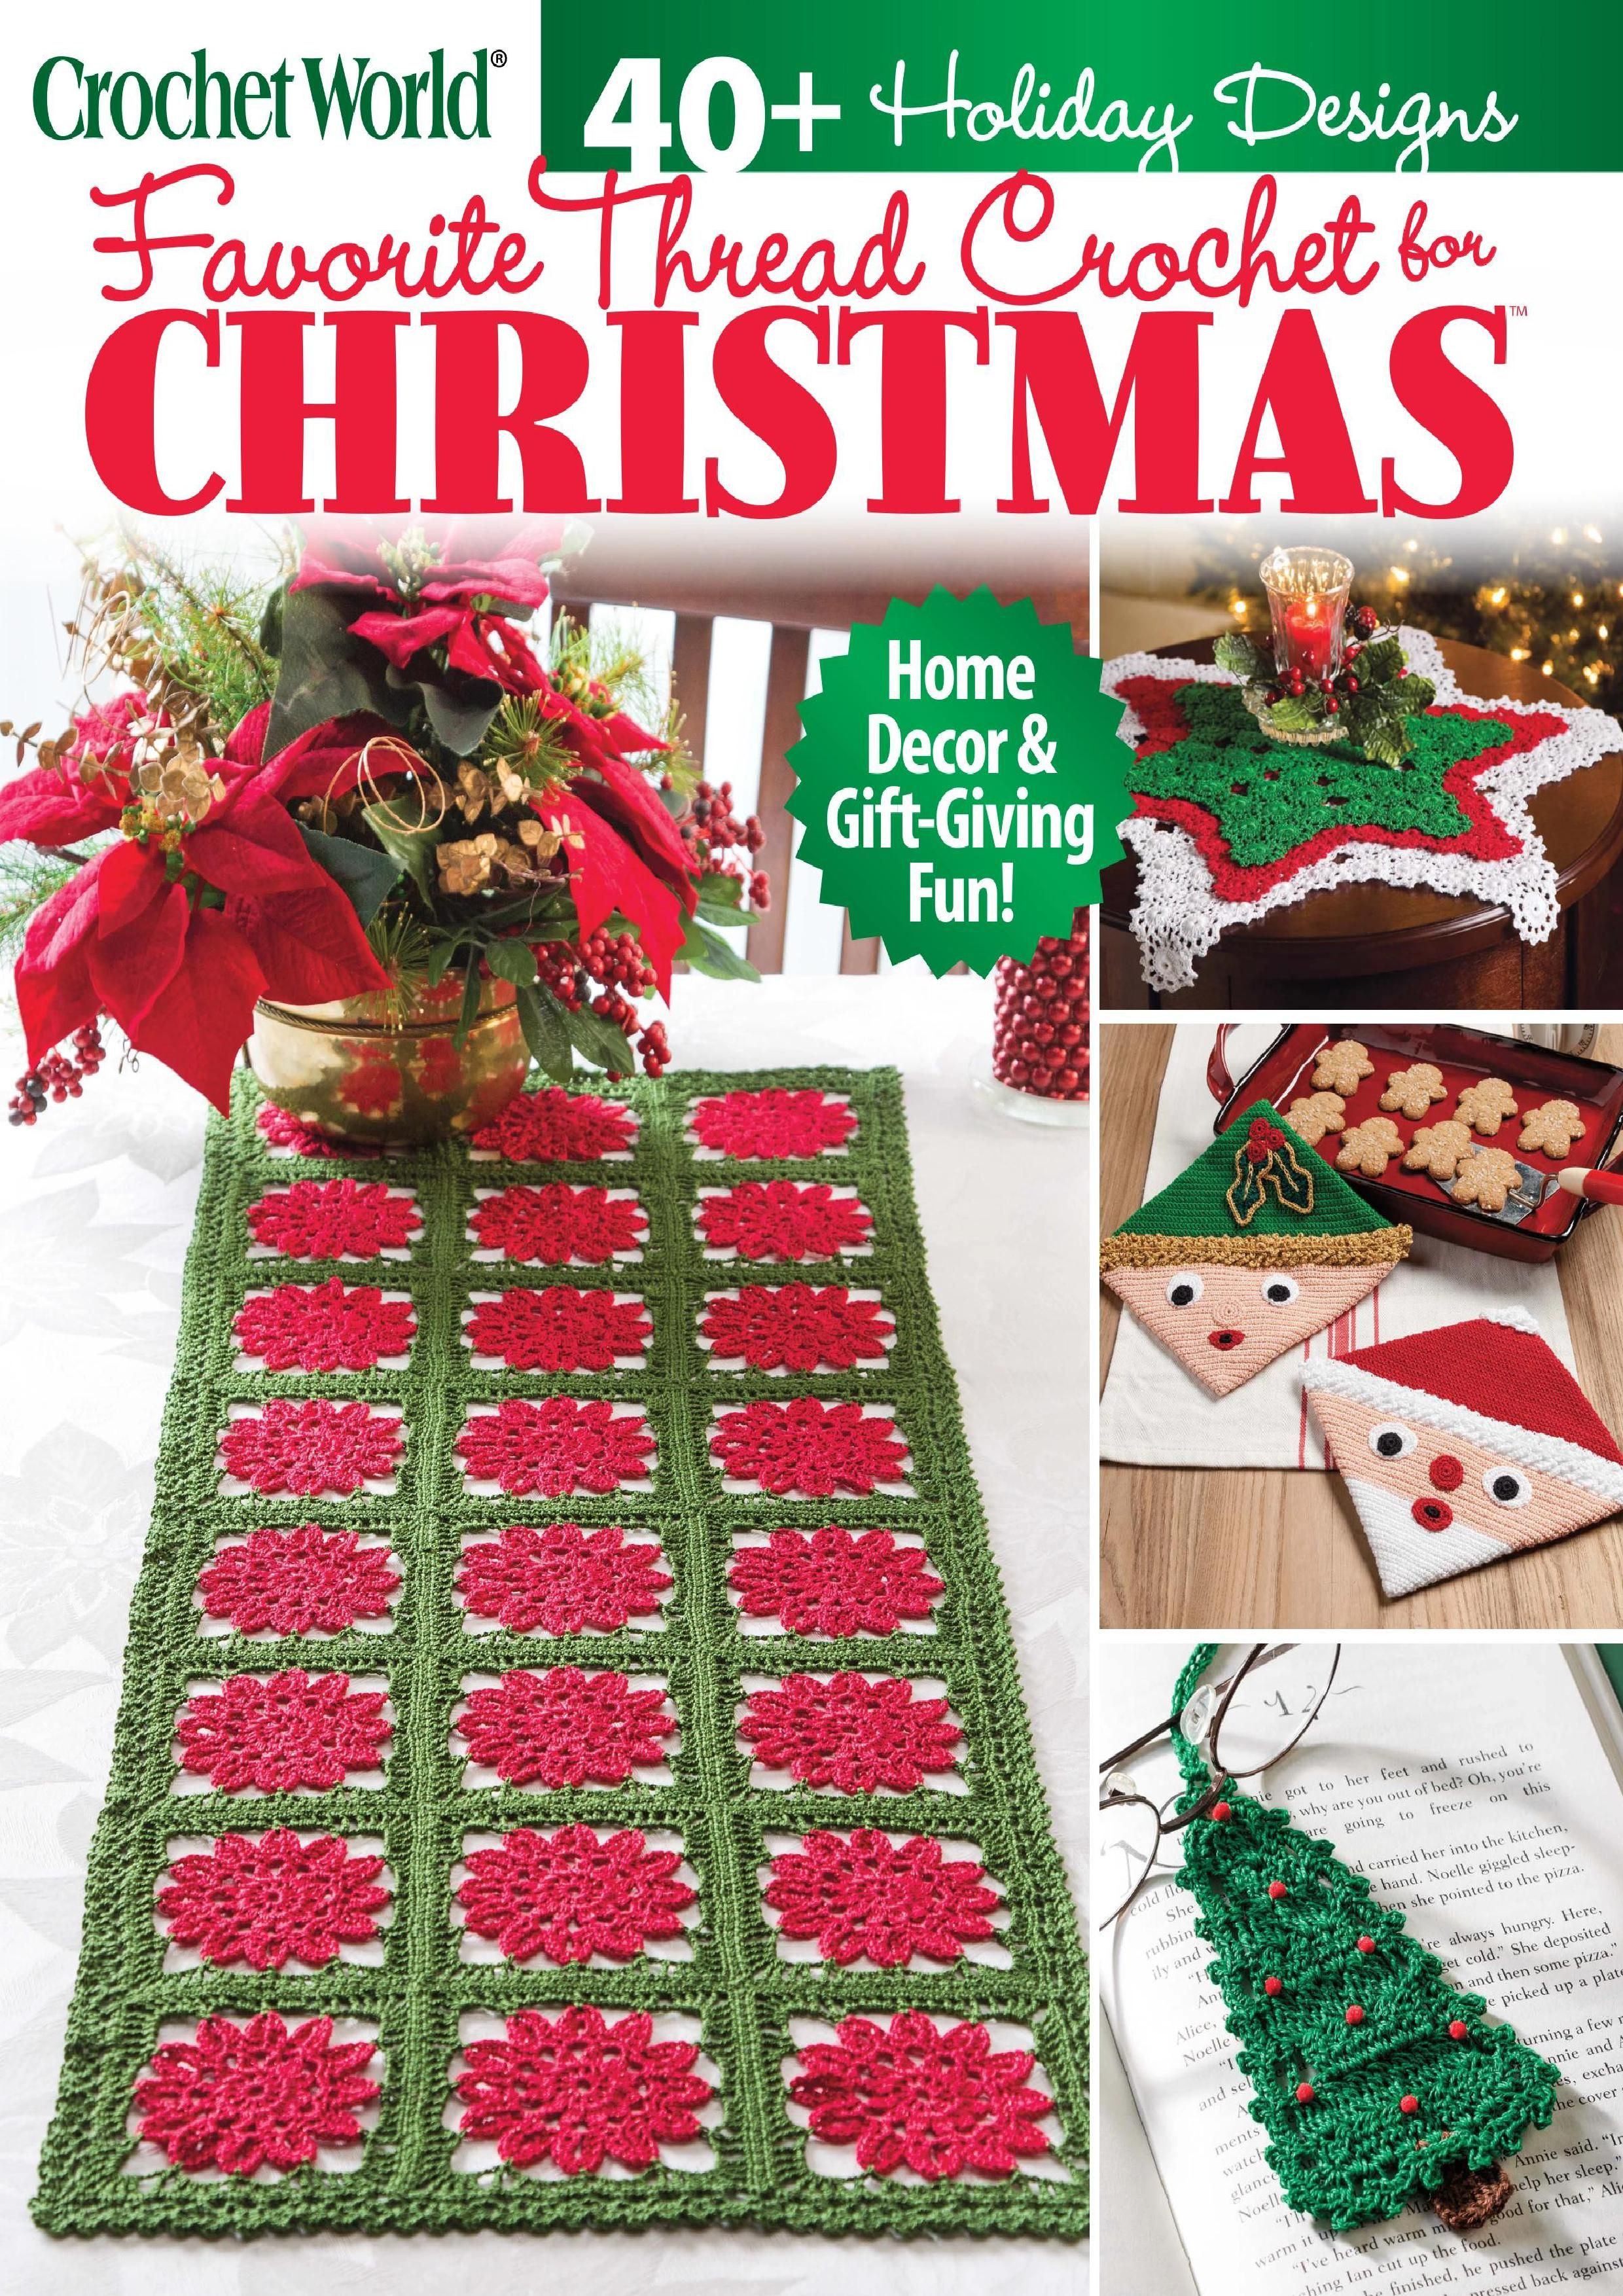 Crochet World 2020 Fall Christmas Download Pdf Magazine In 2020 Holiday Crafts Christmas Crochet World Christmas